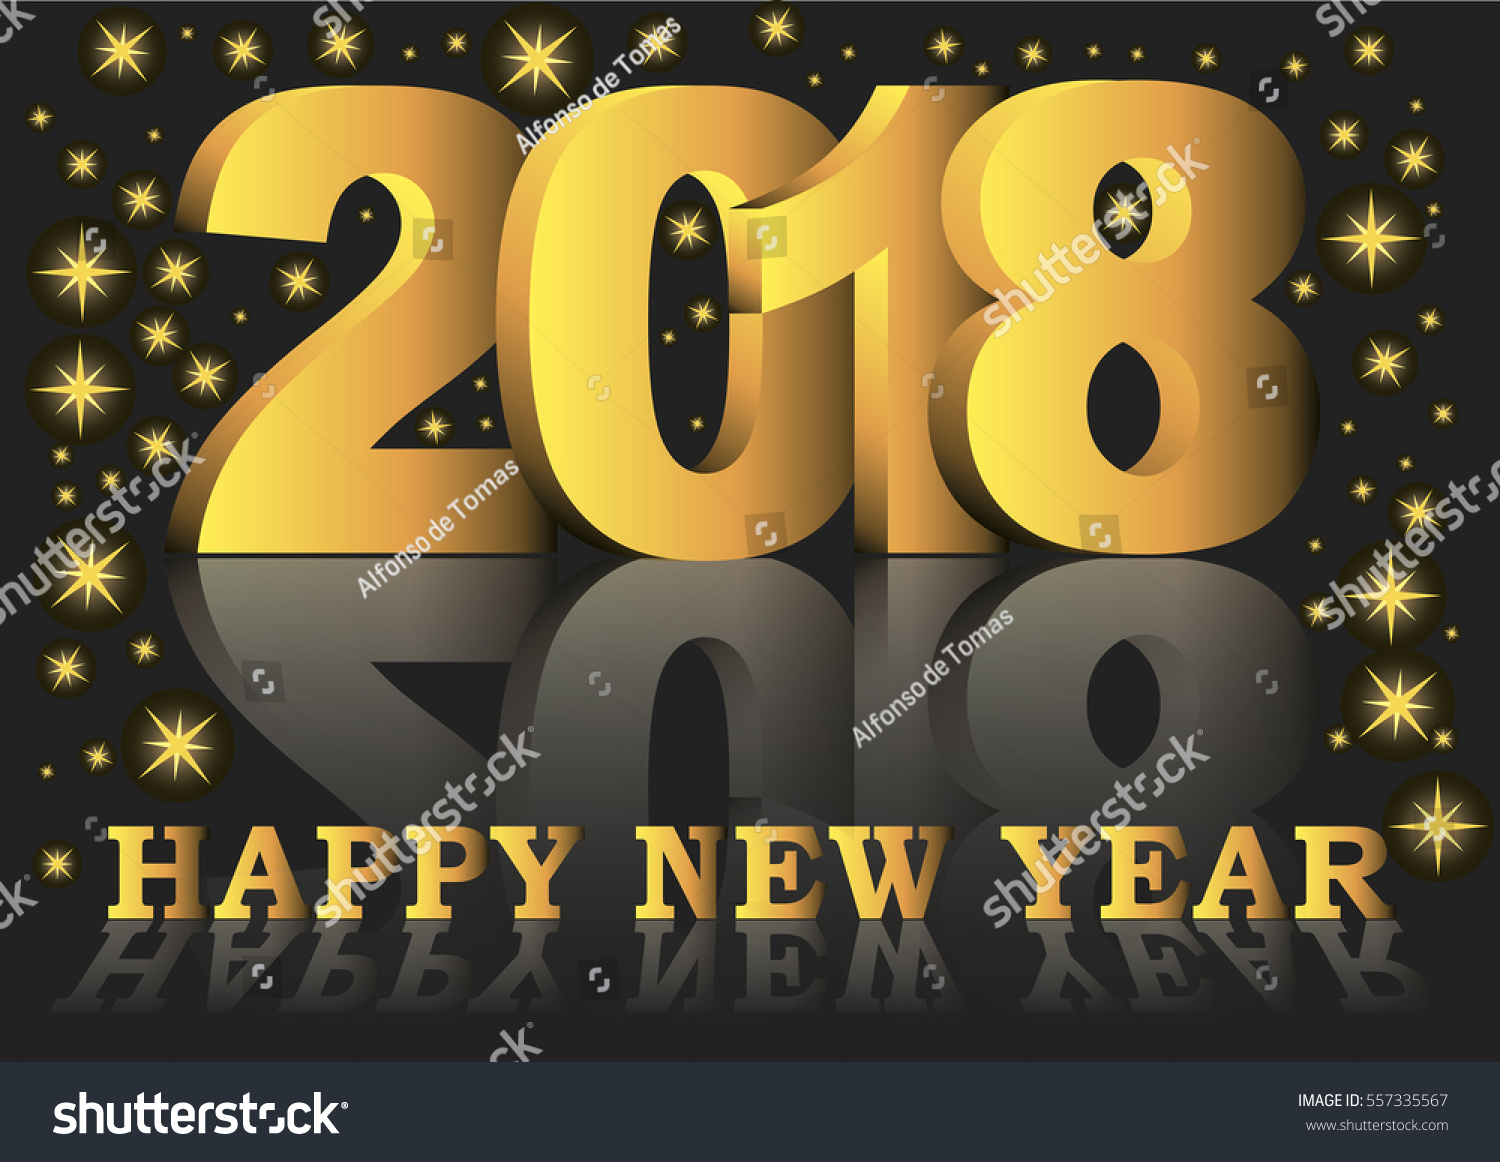 Happy New Year 2018 Greeting Card With Golden Numbers And